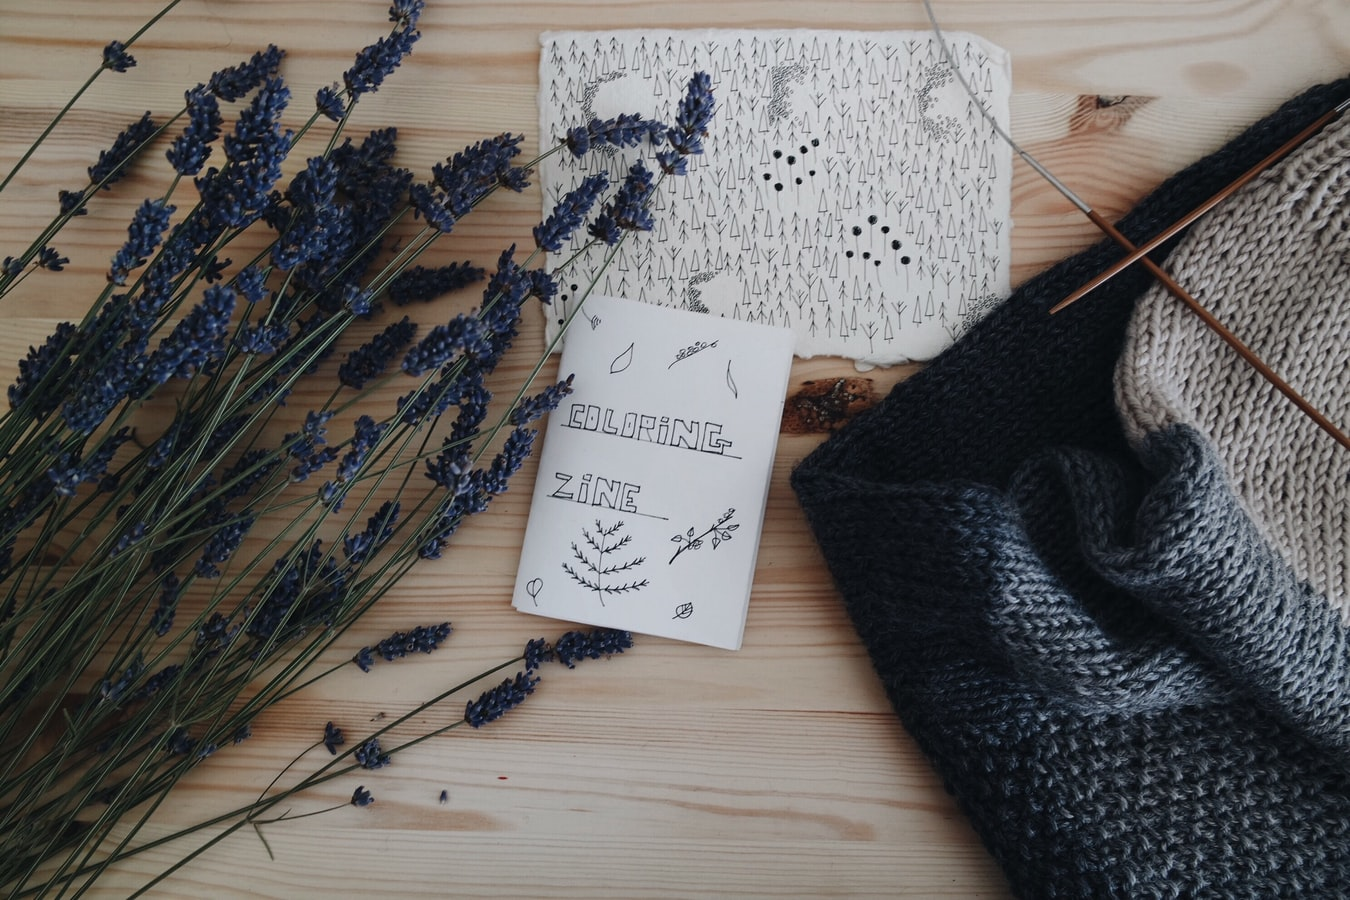 blue leaves, coloring zines, and a knitting project